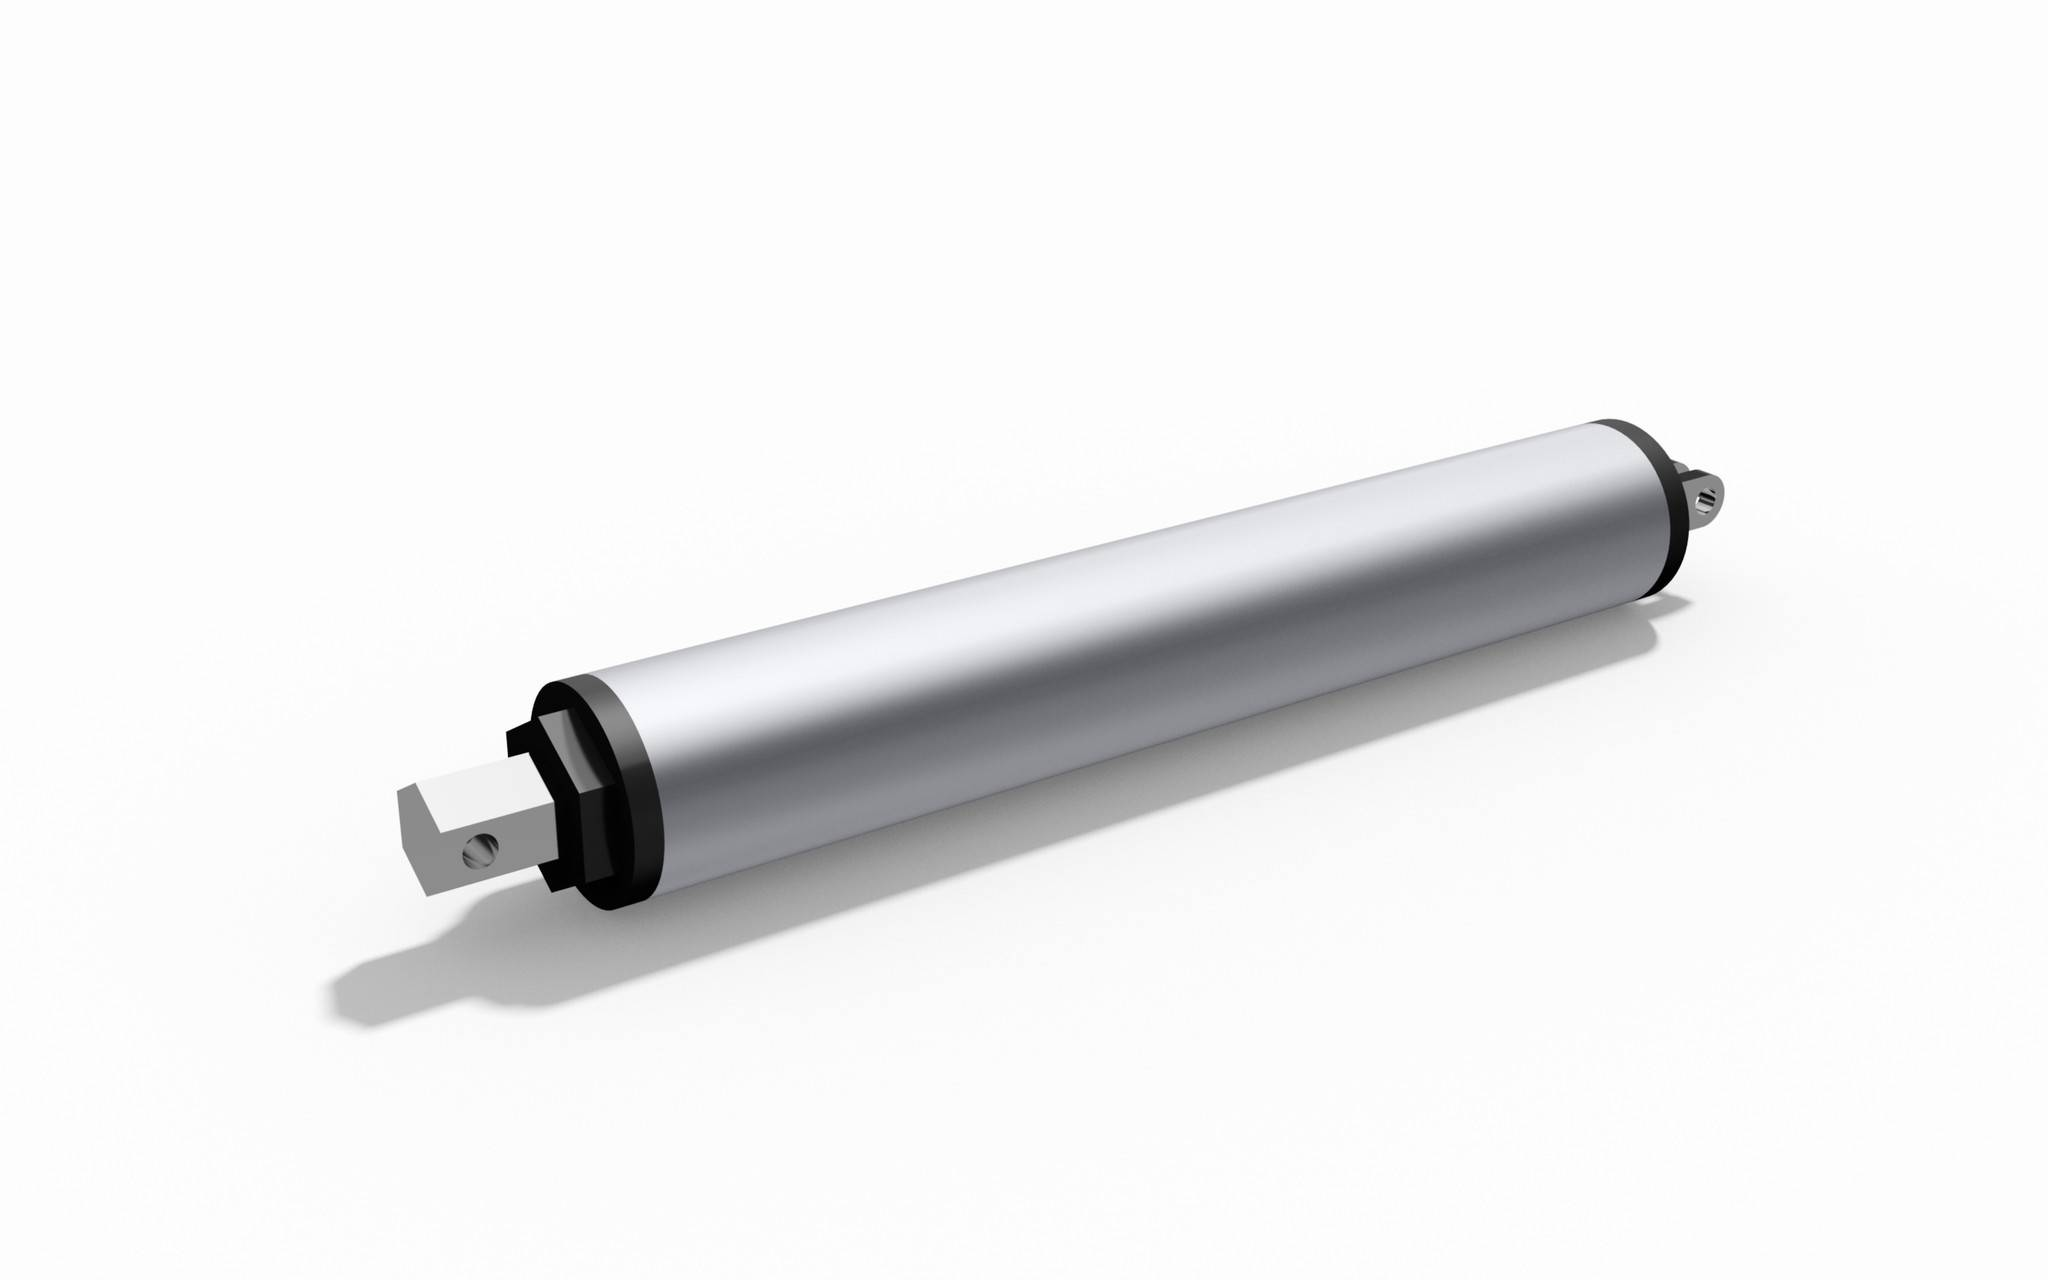 Tubular mini electric Linear Actuator